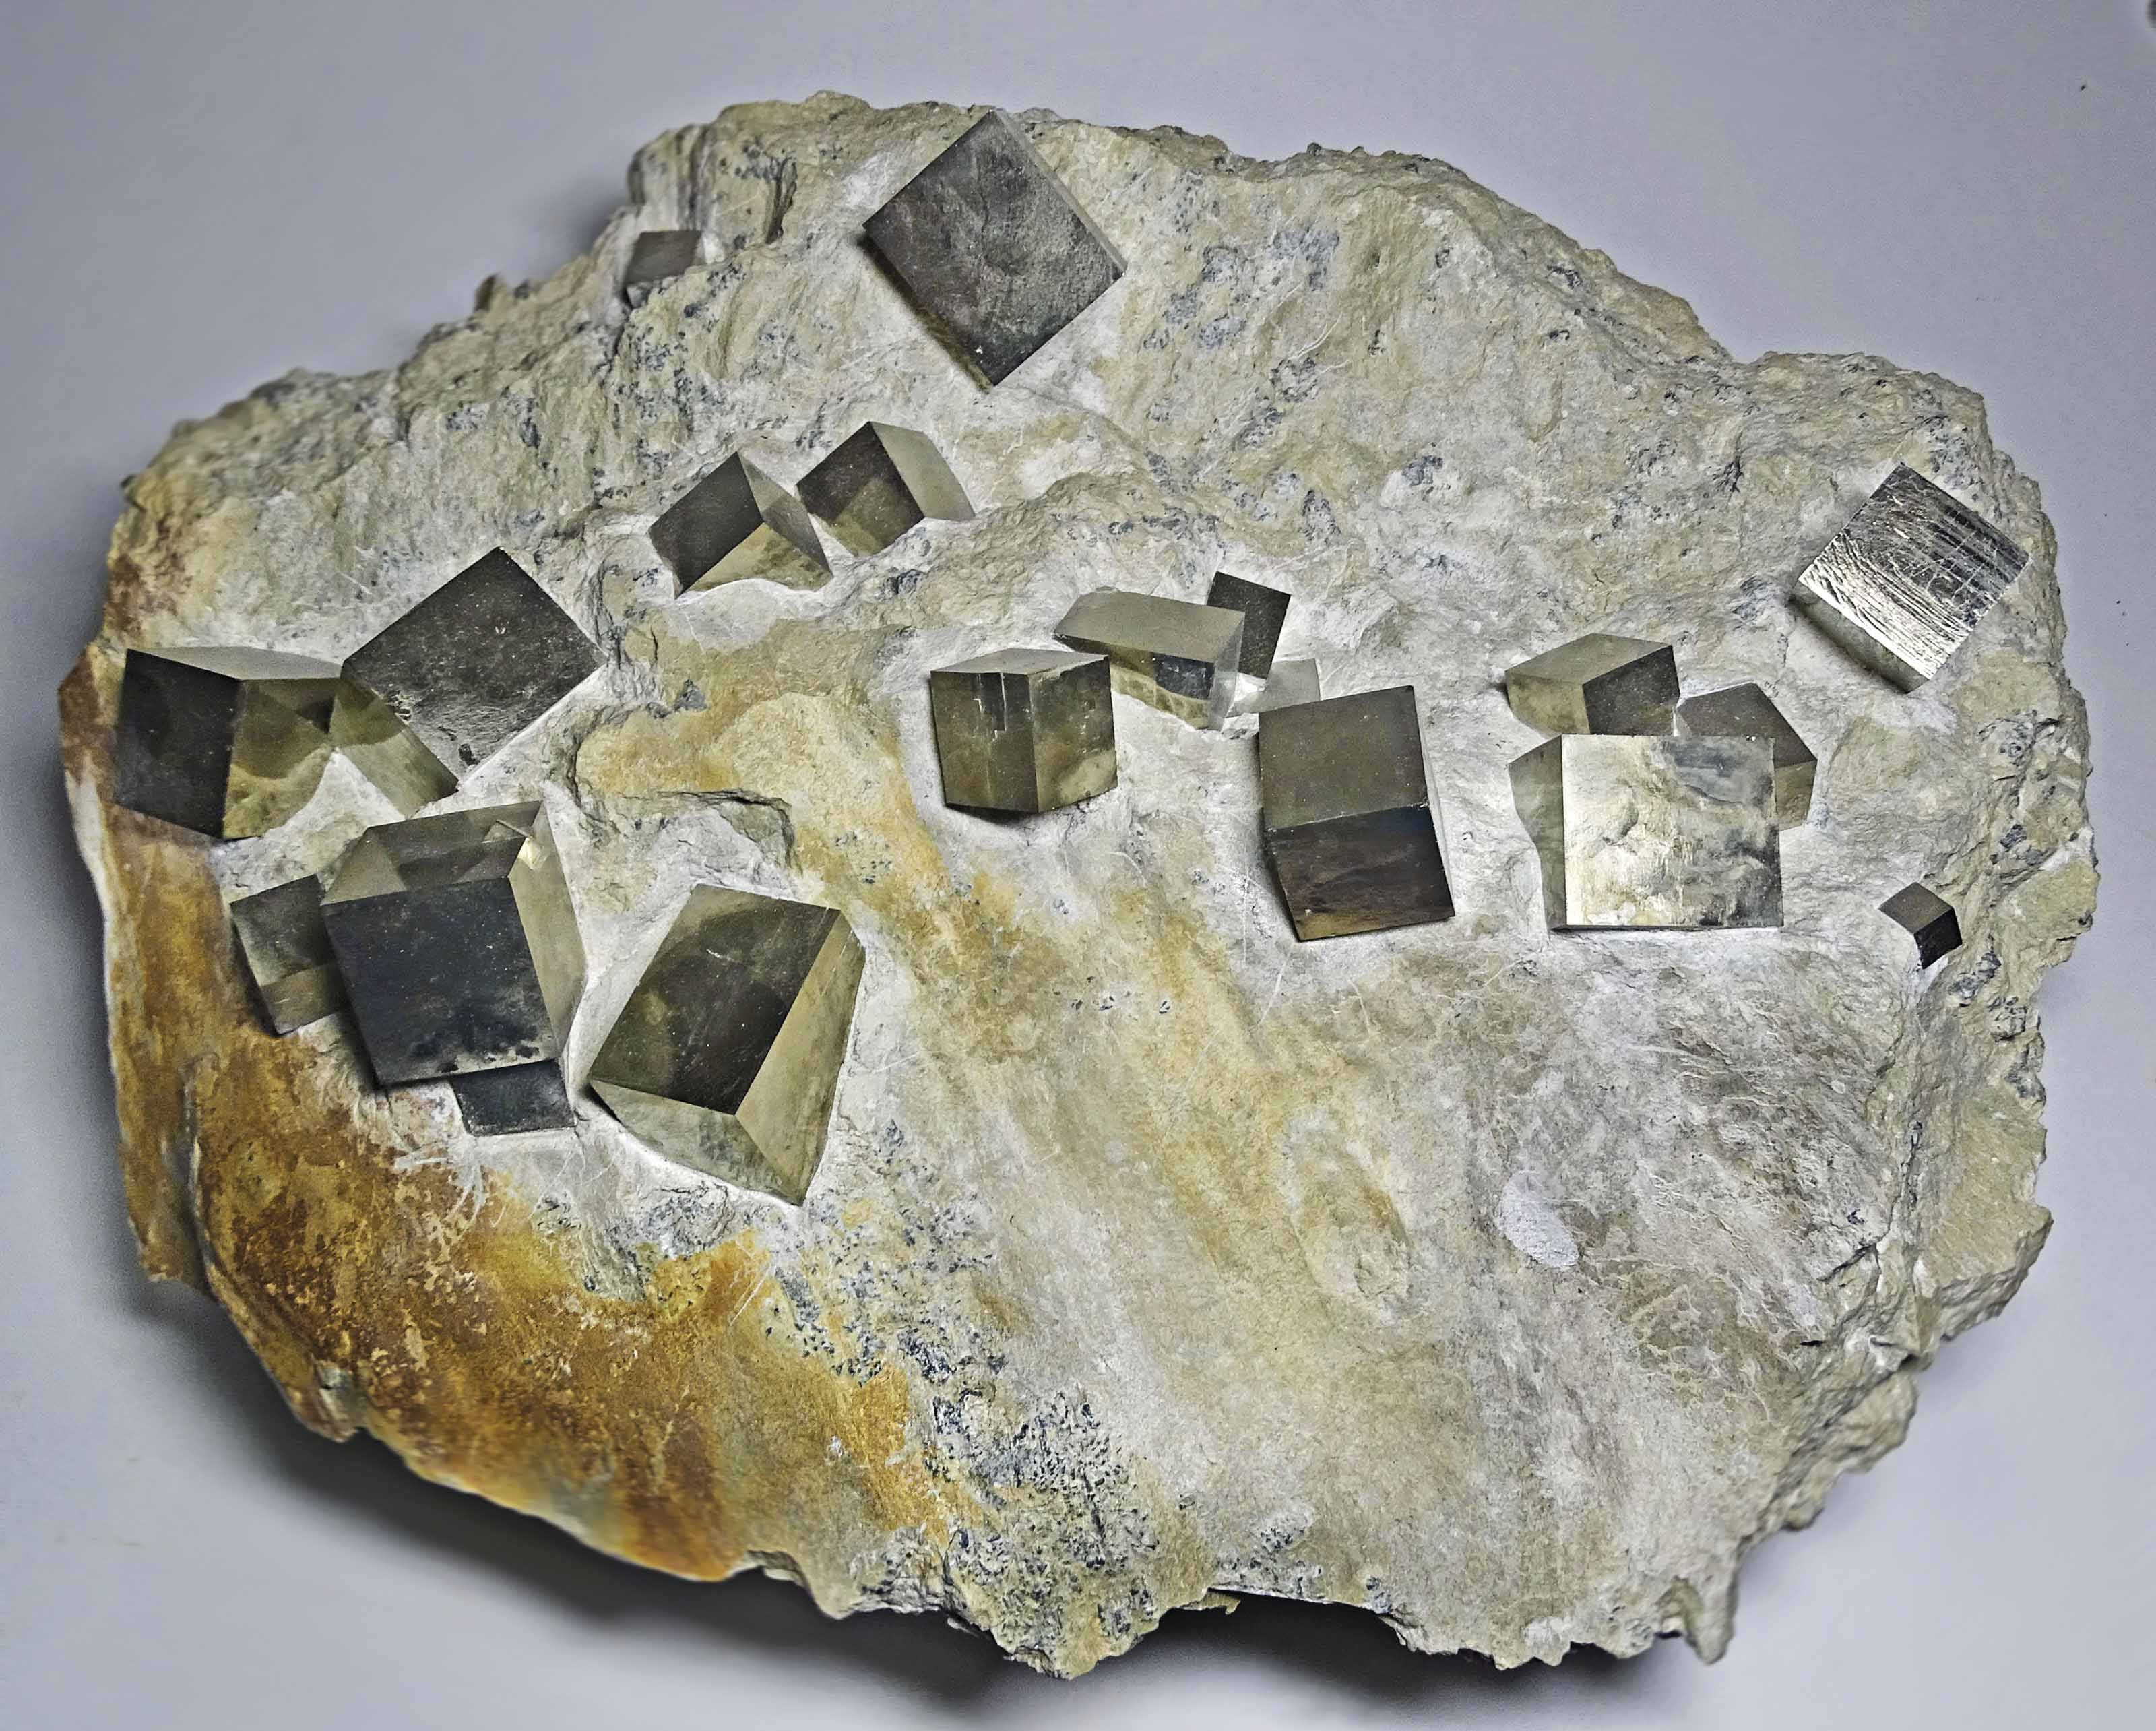 CUBES OF PYRITE